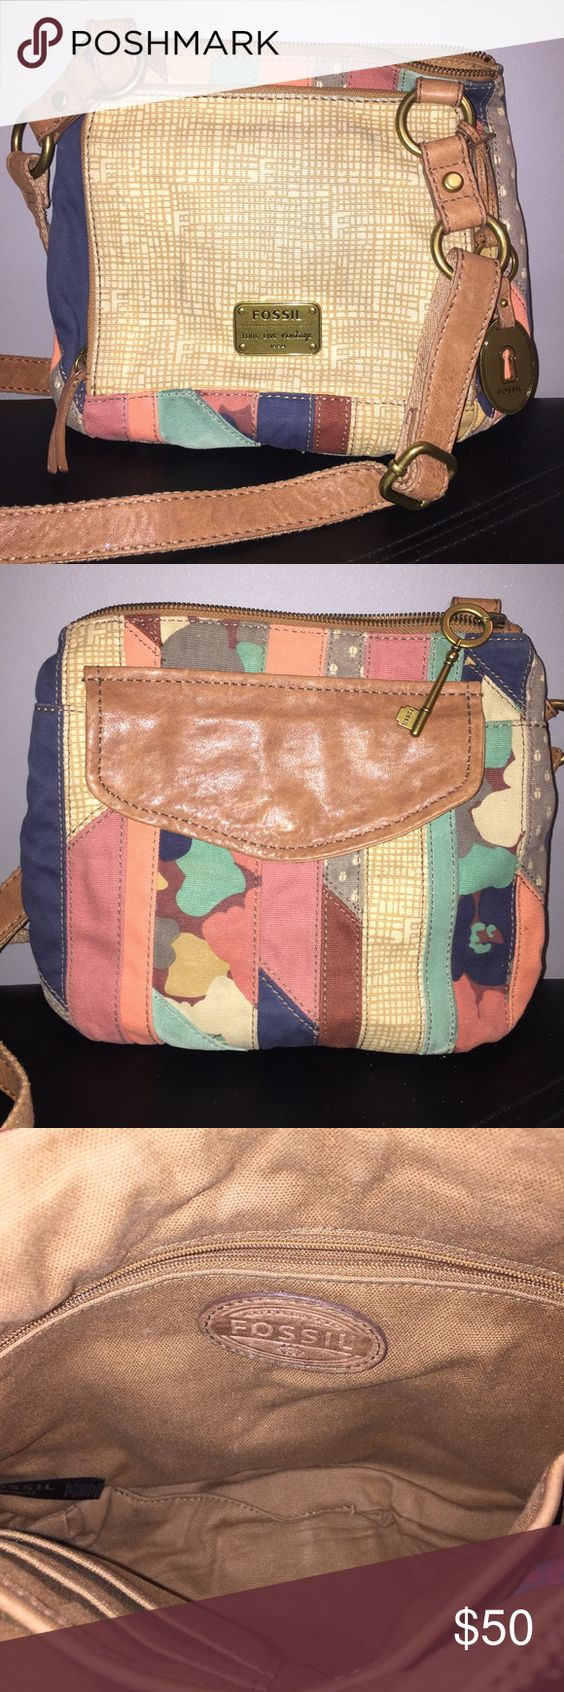 Fossil Long Live Vintage Crossbody Only used a couple of times // excellent condition! Fossil Bags Crossbody Bags